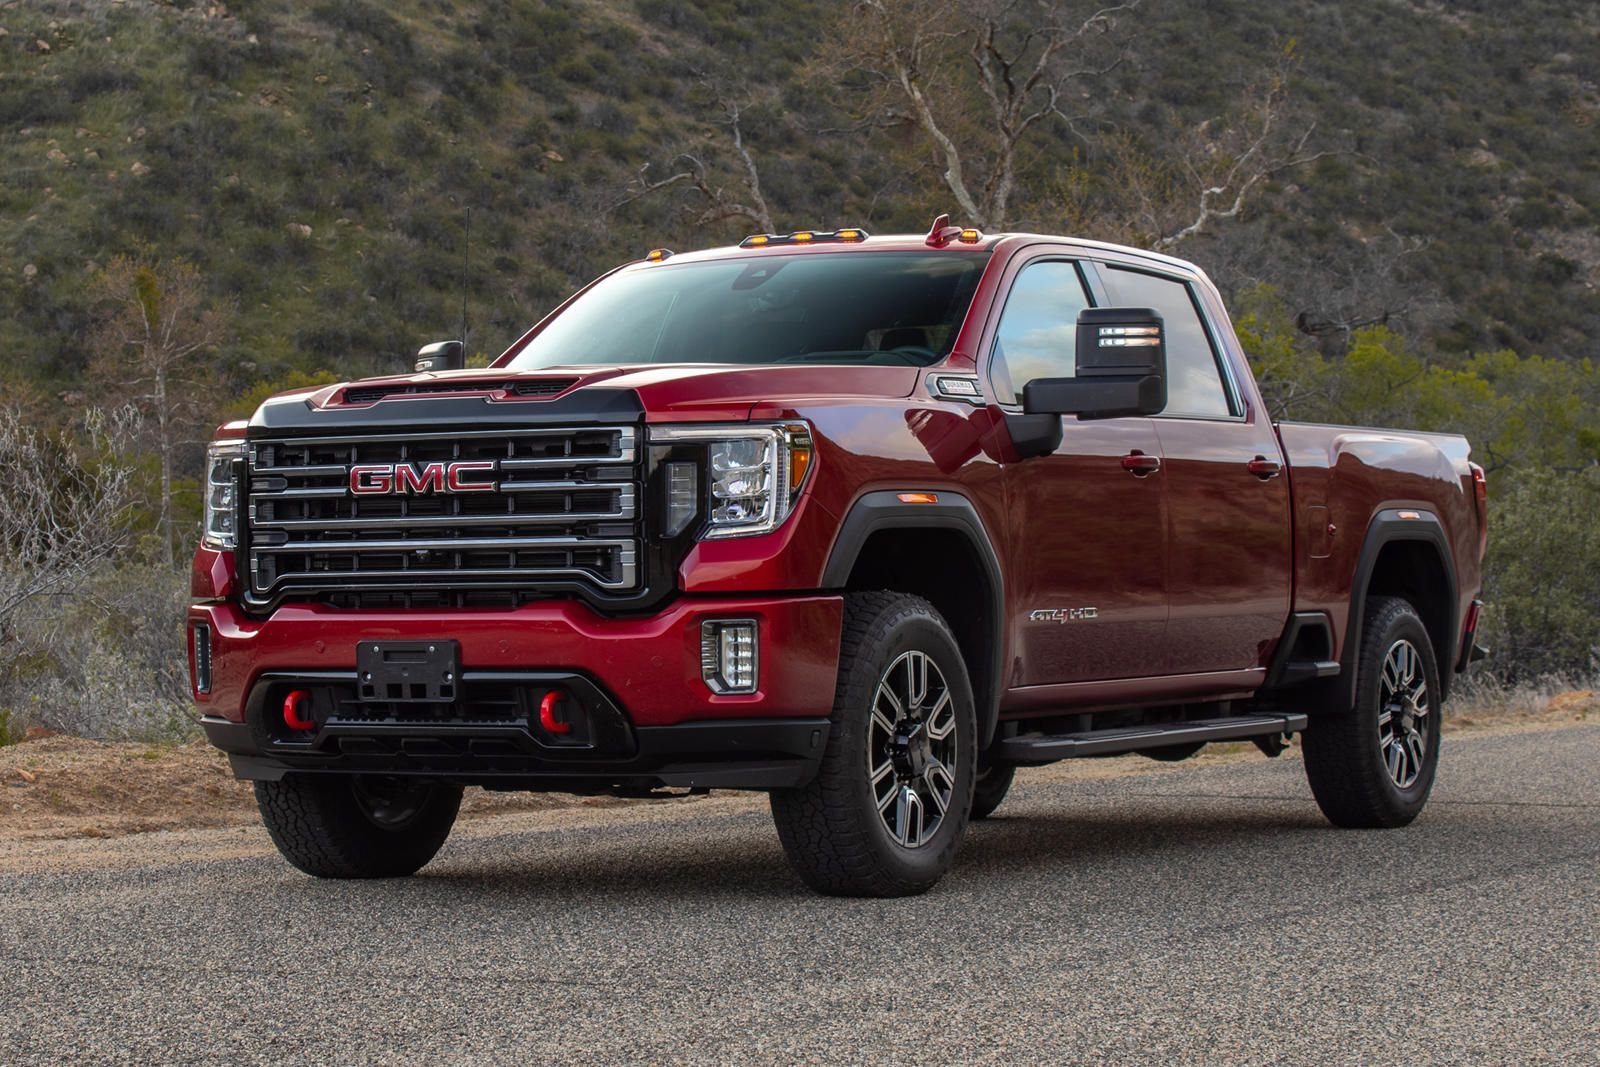 2020 Gmc Sierra 2500hd Test Drive Review Towing Just Got Even Smarter In 2020 Gmc Sierra 2500hd Gmc Sierra Gmc